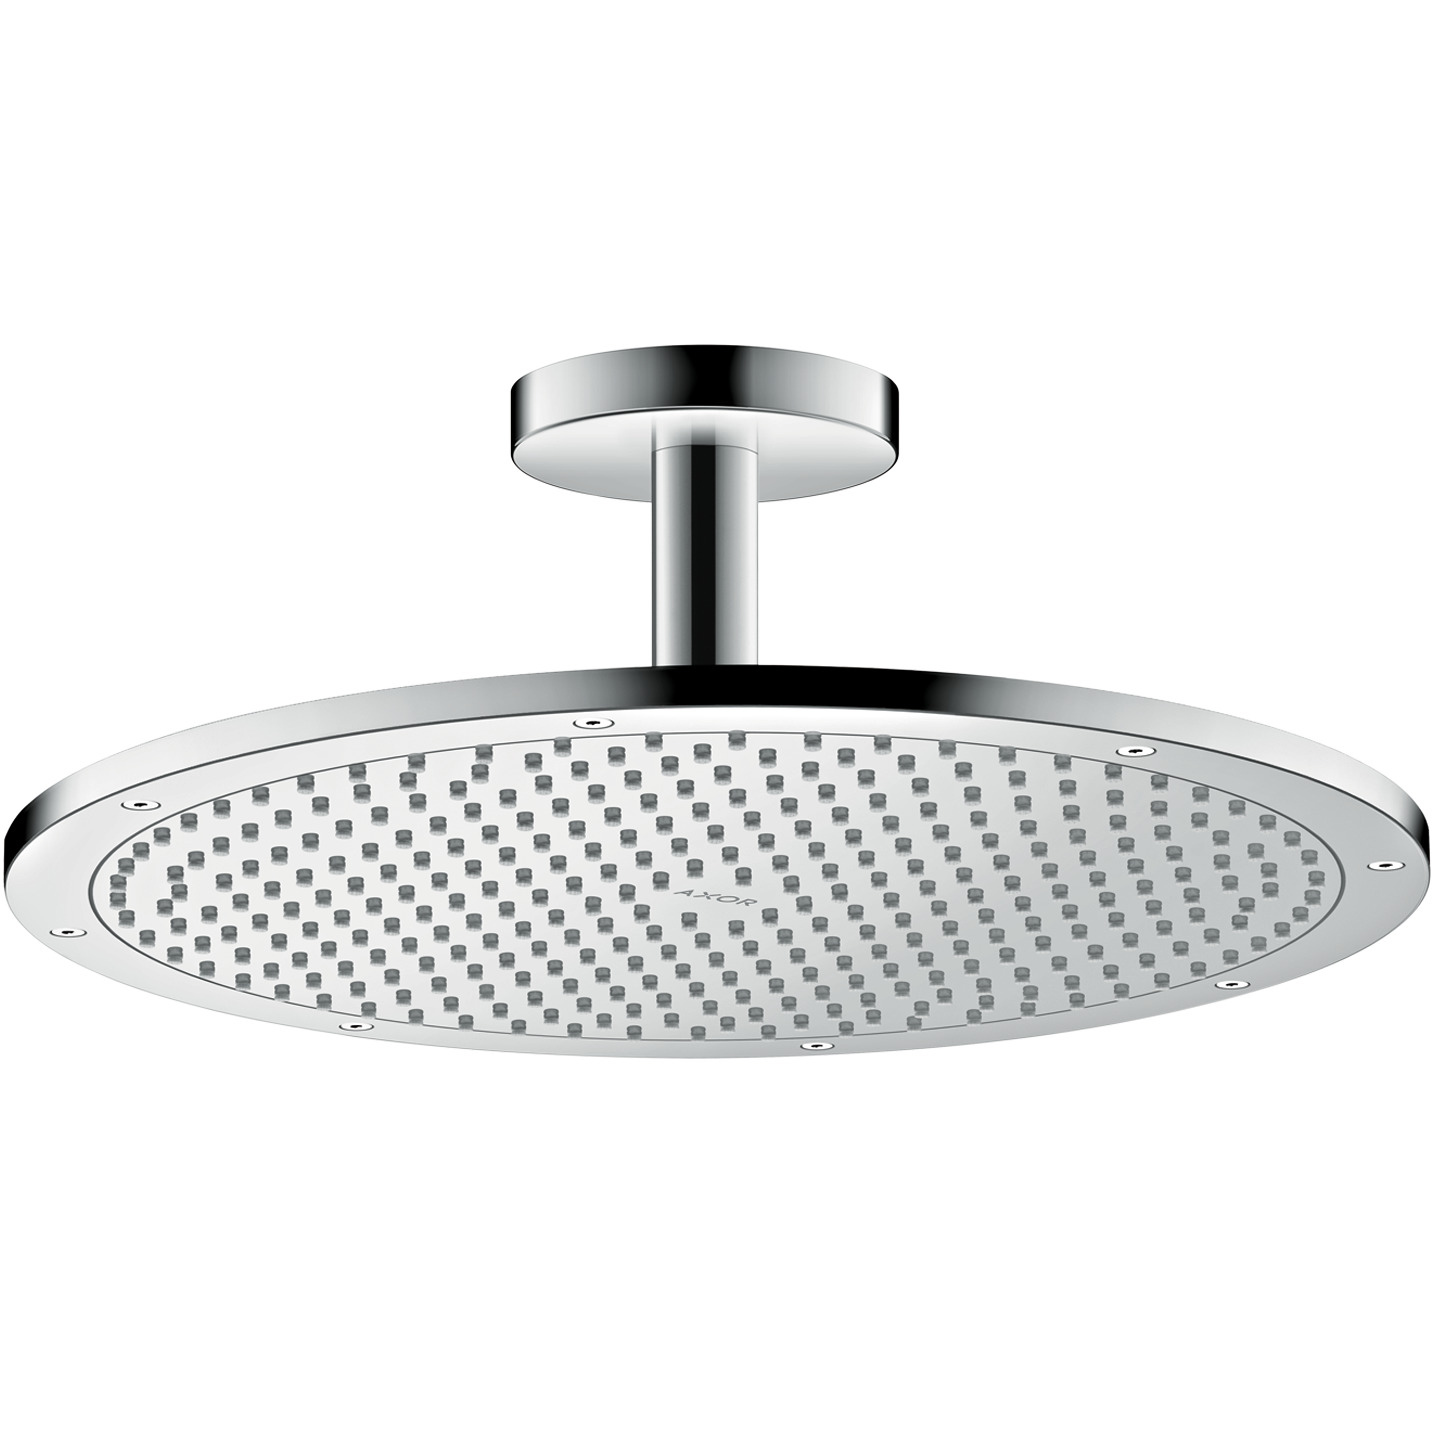 Details About Hansgrohe Shower Head 350 1jet Axor Chrome 26035000